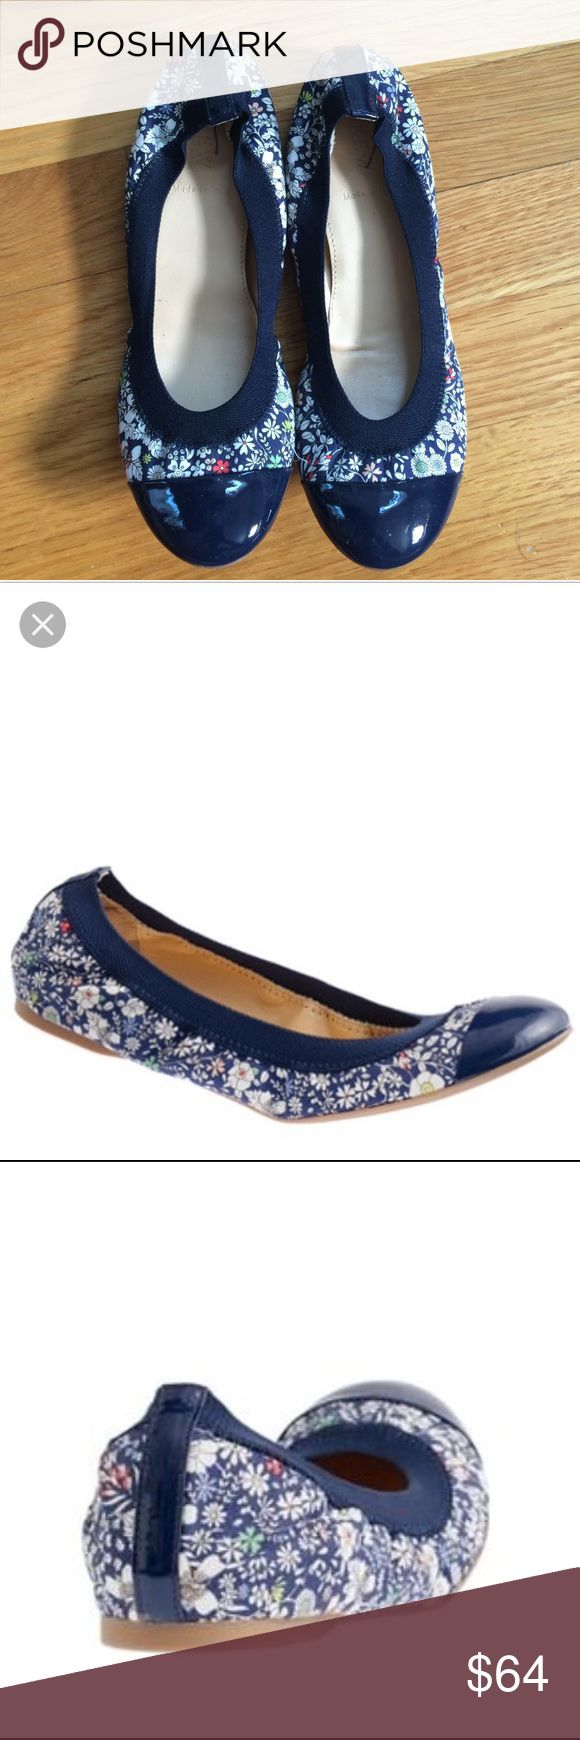 J crew Liberty print ballet flats Adorable J. Crew ballet flats in Liberty of London Print fabric. From the j.crew store (not outlet). Very gently worn (maximum 2 times), they are unfortunately slightly too big for me. I normally wear size 5.5. please see photos for more detail. Made in Italy. J. Crew Shoes Flats & Loafers